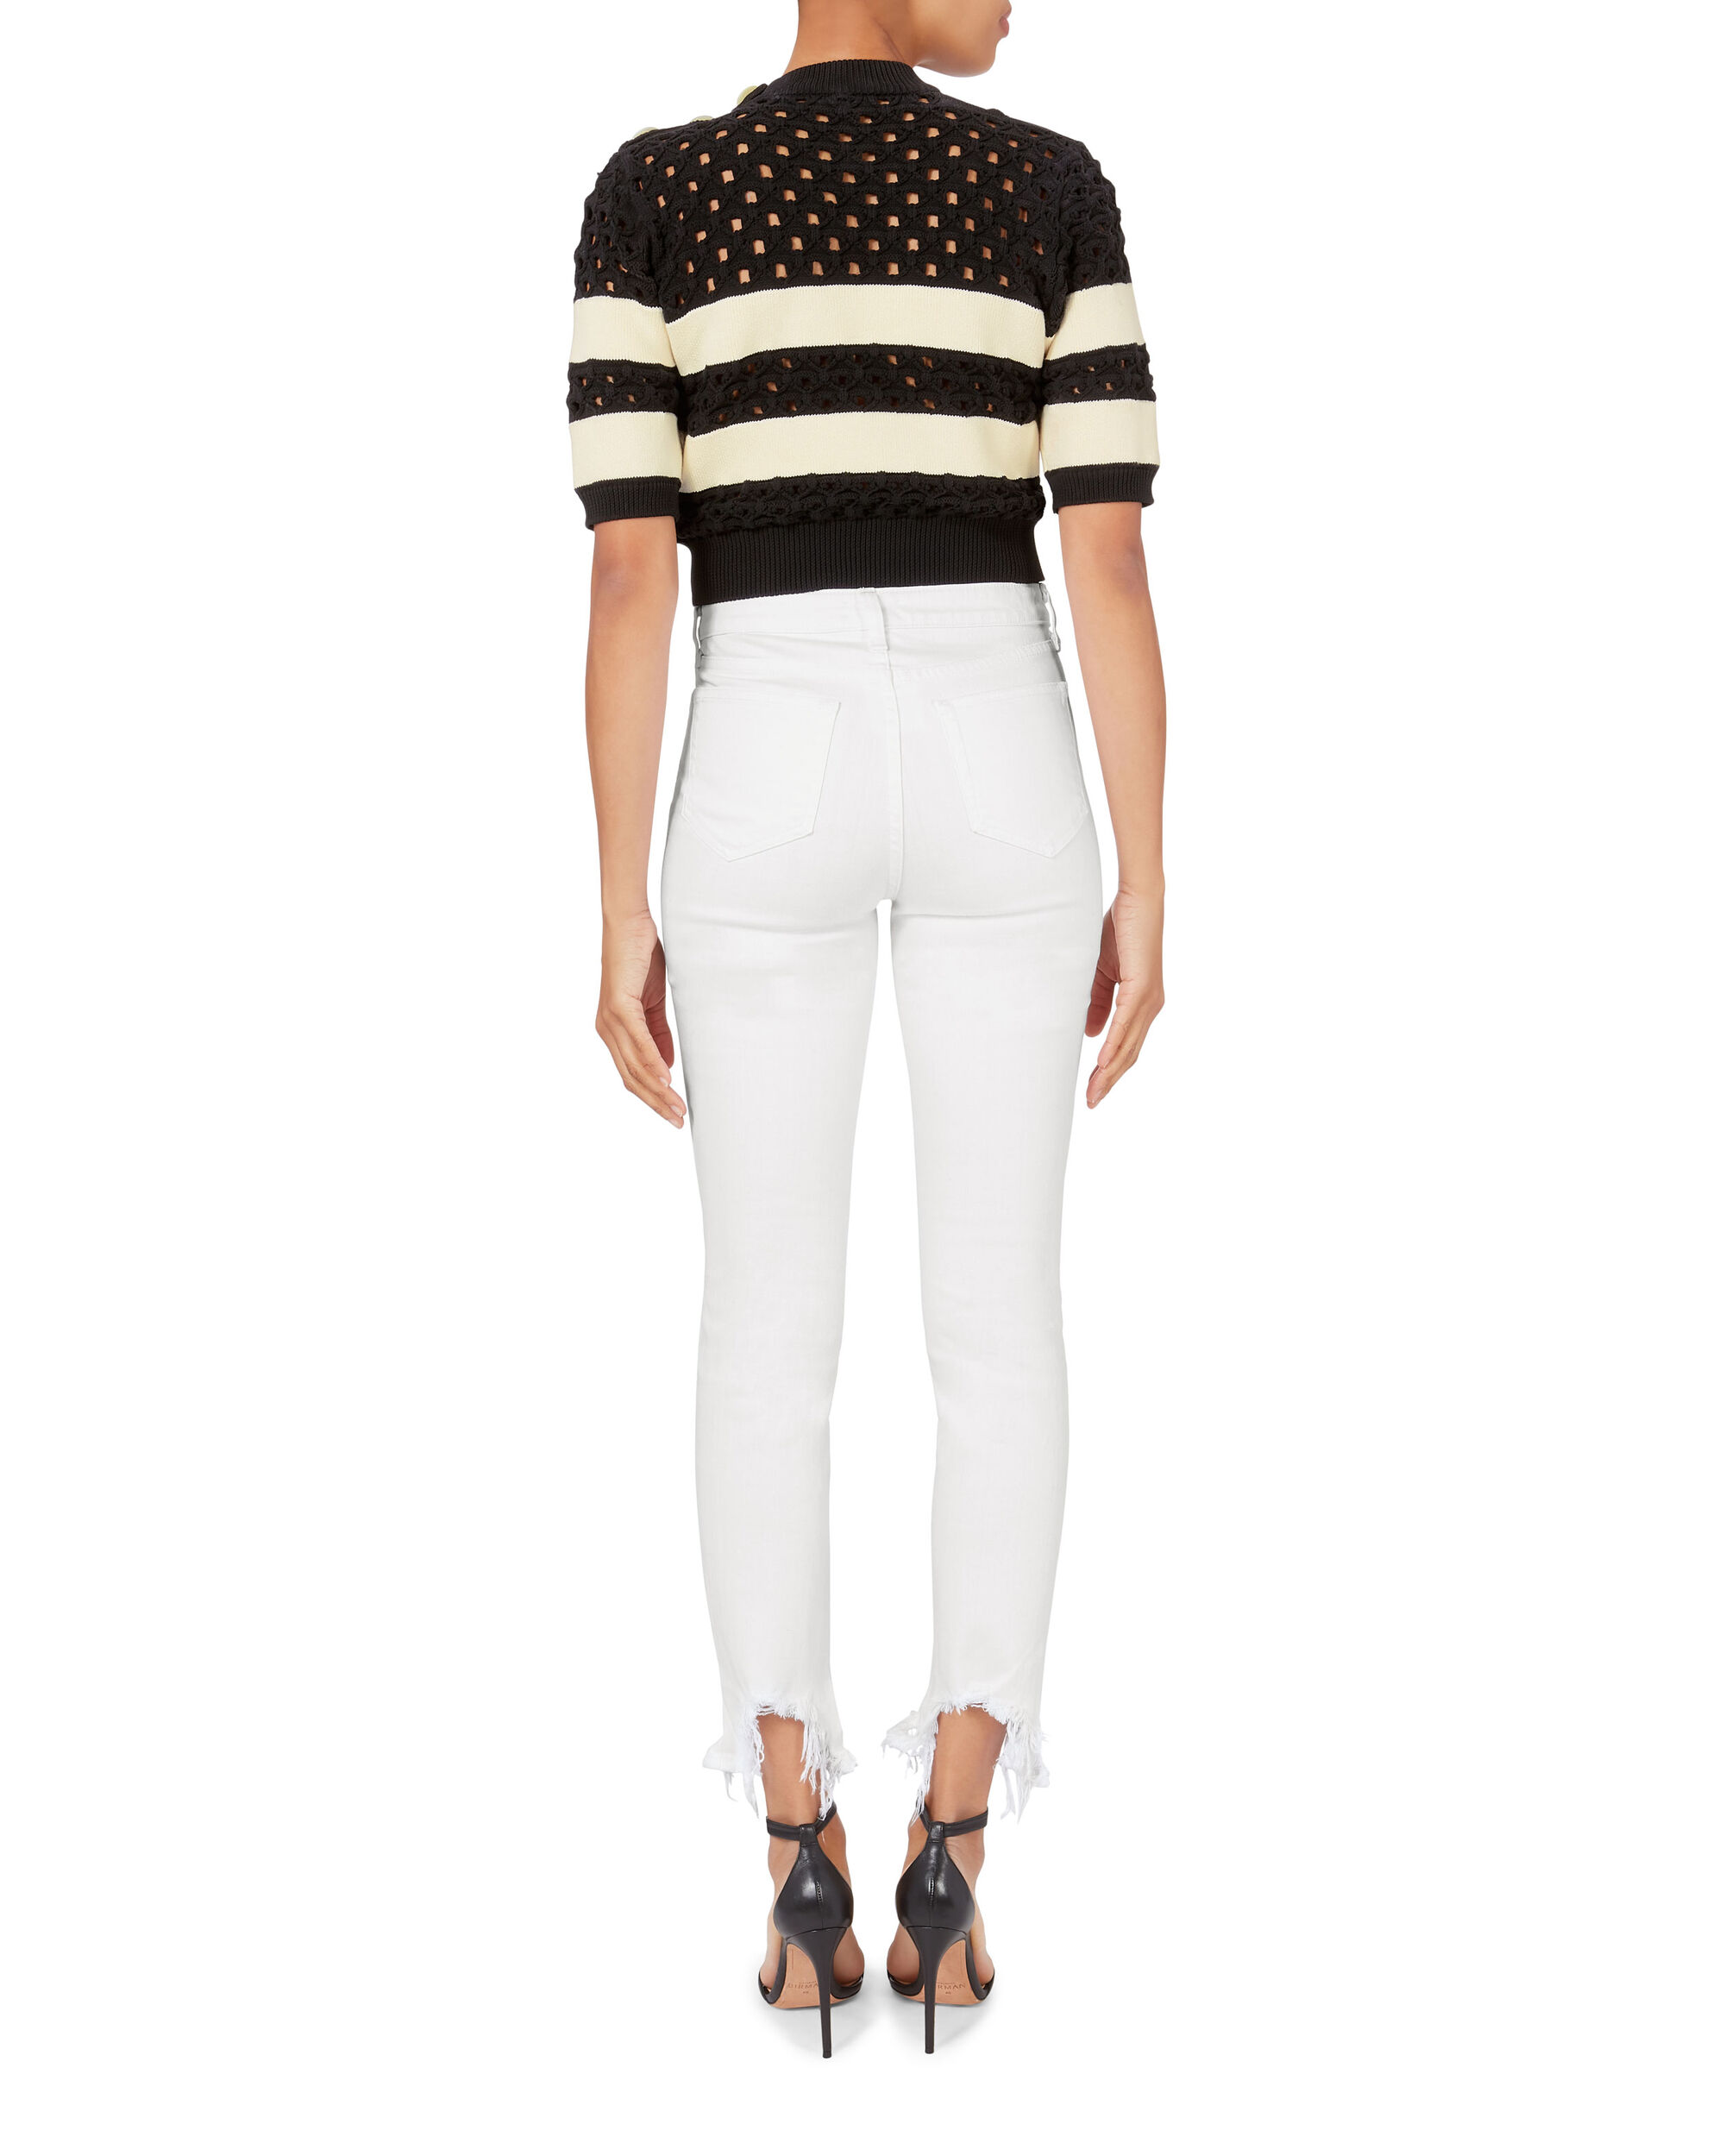 High Line Blanc Destructed White Jeans, WHITE, hi-res